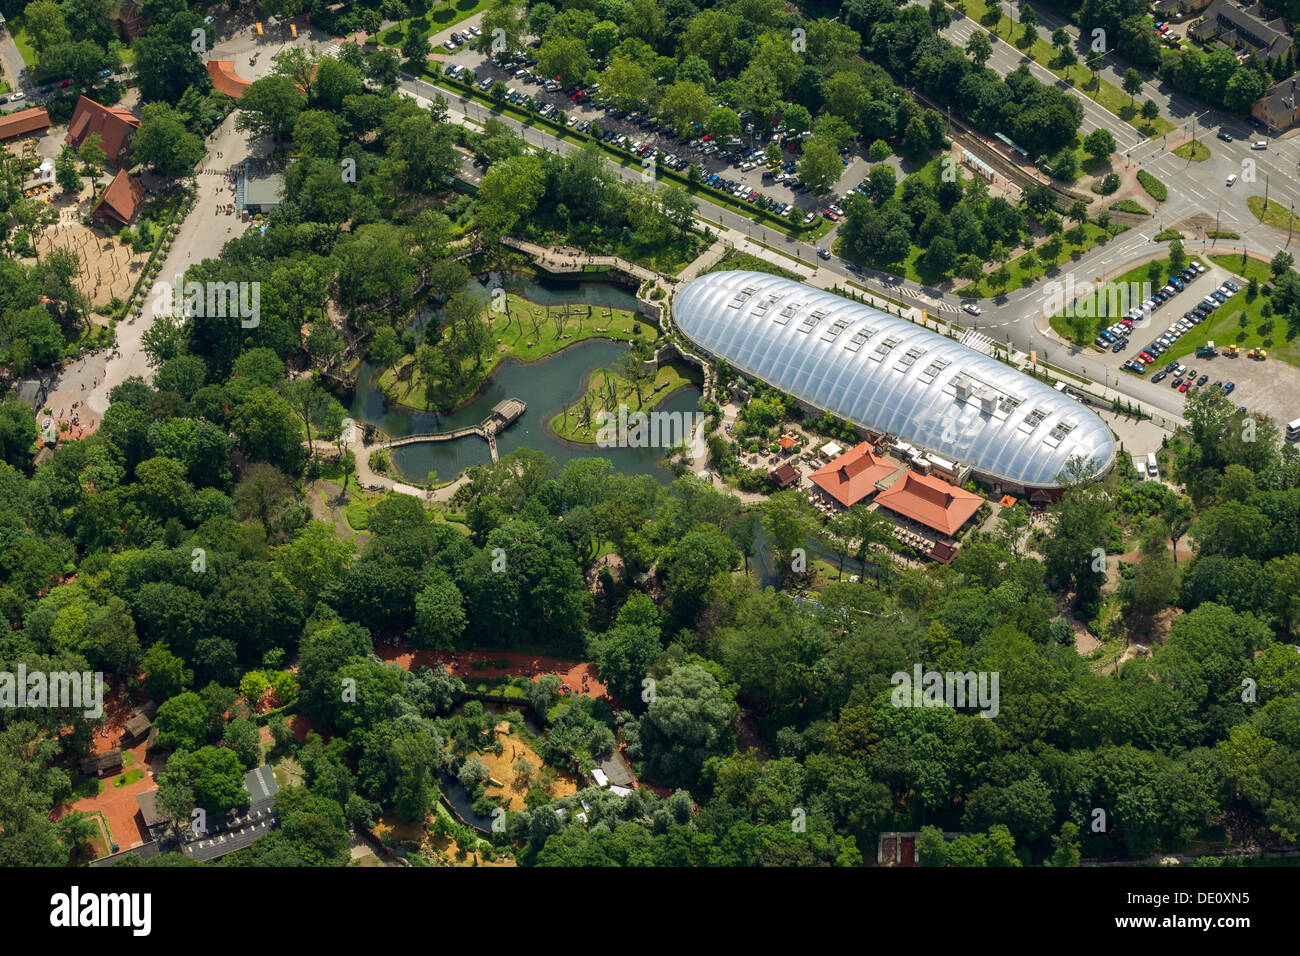 Aerial view, ZOOM Erlebniswelt world of experience, Gelsenkirchen Zoo, Arizona world of experience, Gelsenkirchen, Ruhr area - Stock Image